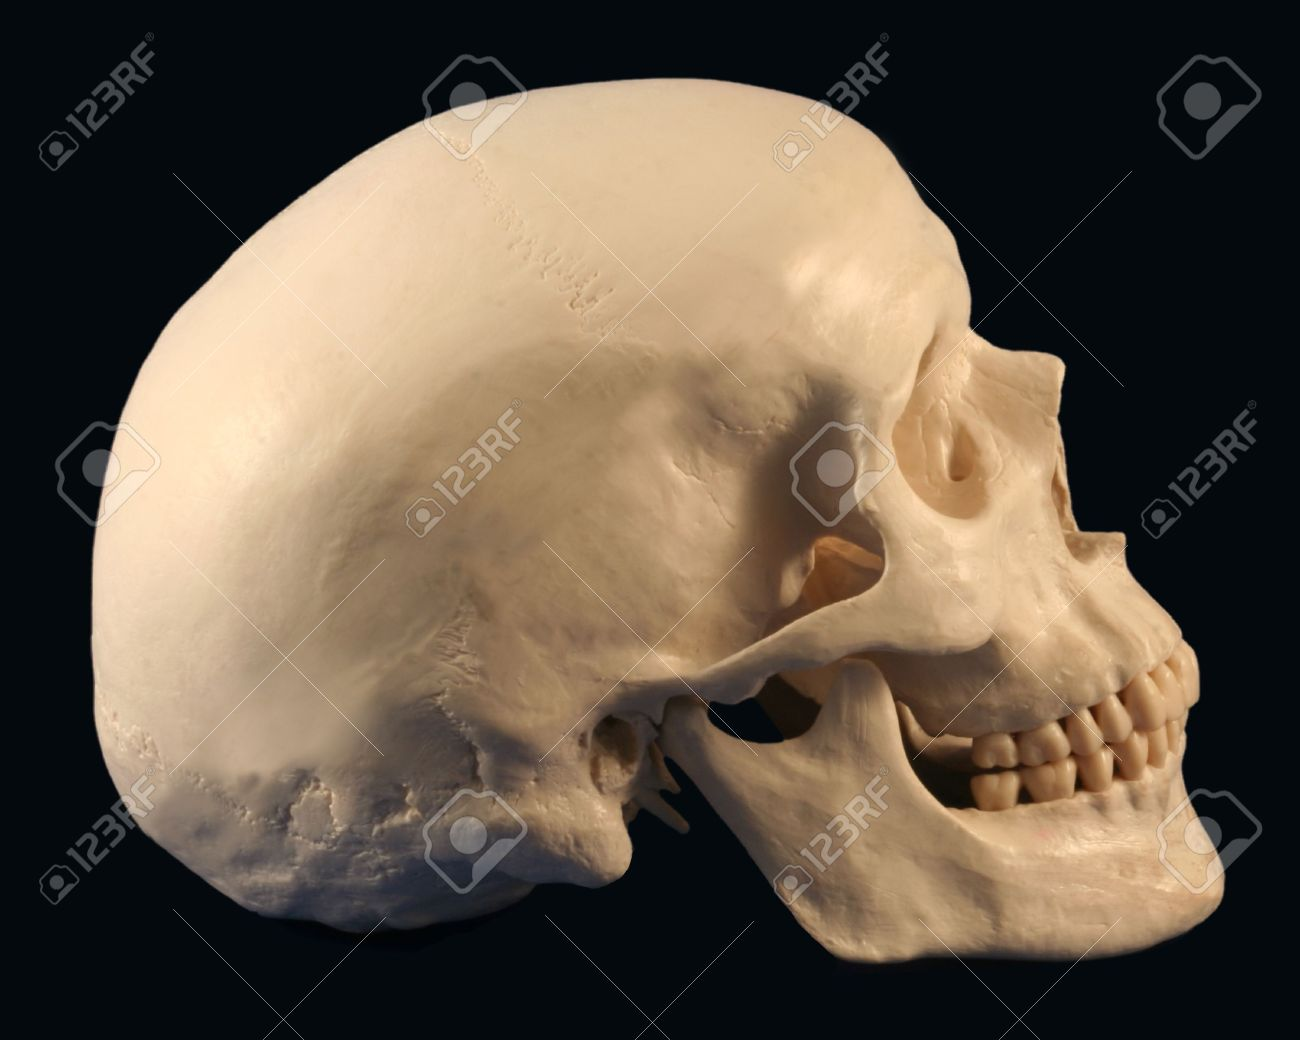 3472422 a side view of a human skull on black a side view of a human skull on black stock photo, picture and